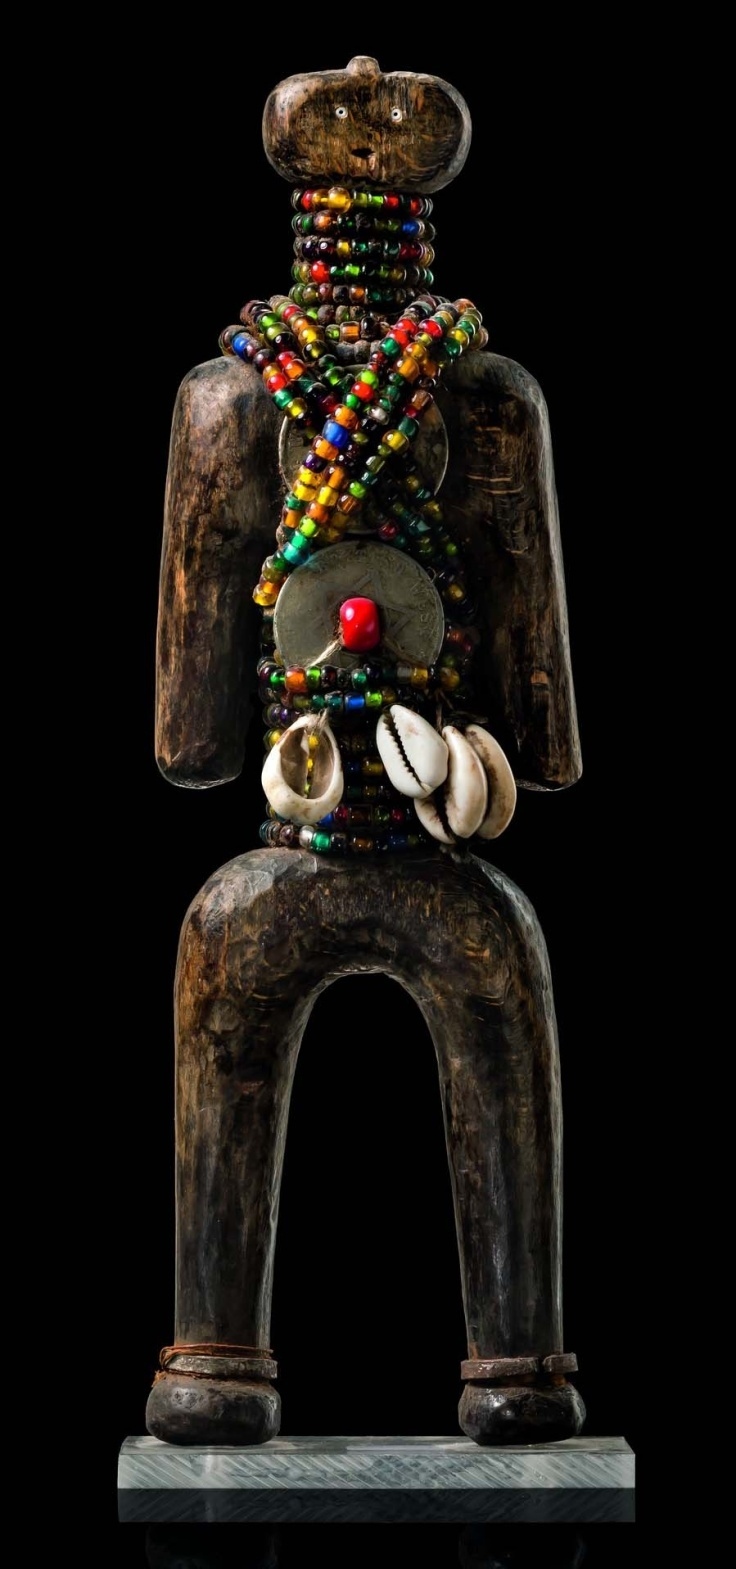 Africa | Fertility doll from the Namchi people of Cameroon | Wood, glass beads, cowrie shells and metal | These maternity dolls are worn on the belly or on the back, by women that are threaten to be sterility. Carved by blacksmiths, these effigies are then decorated by women themselves.